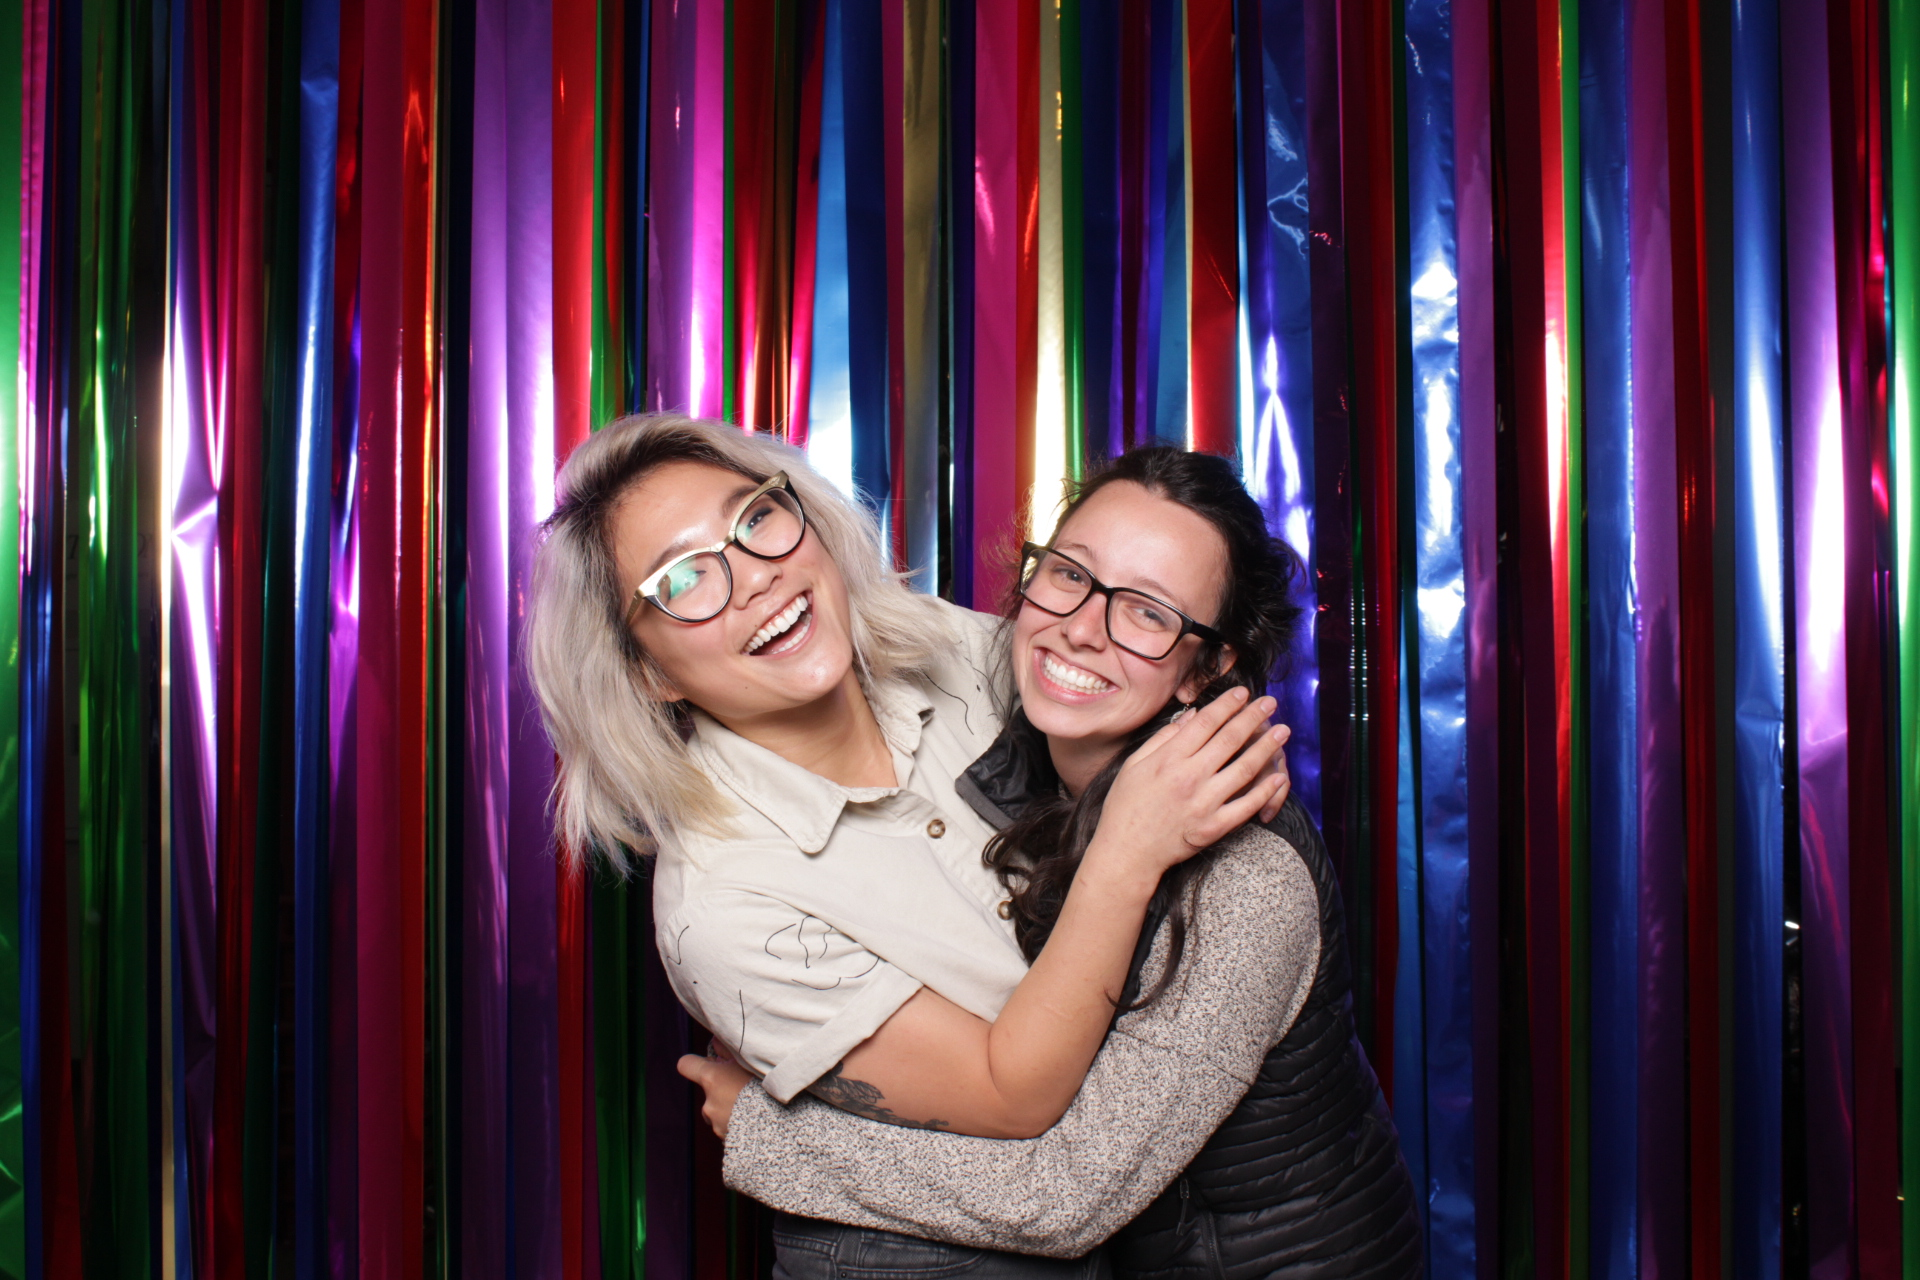 Minneapolis_corporate_Party_photo_booth_rental (21).jpg